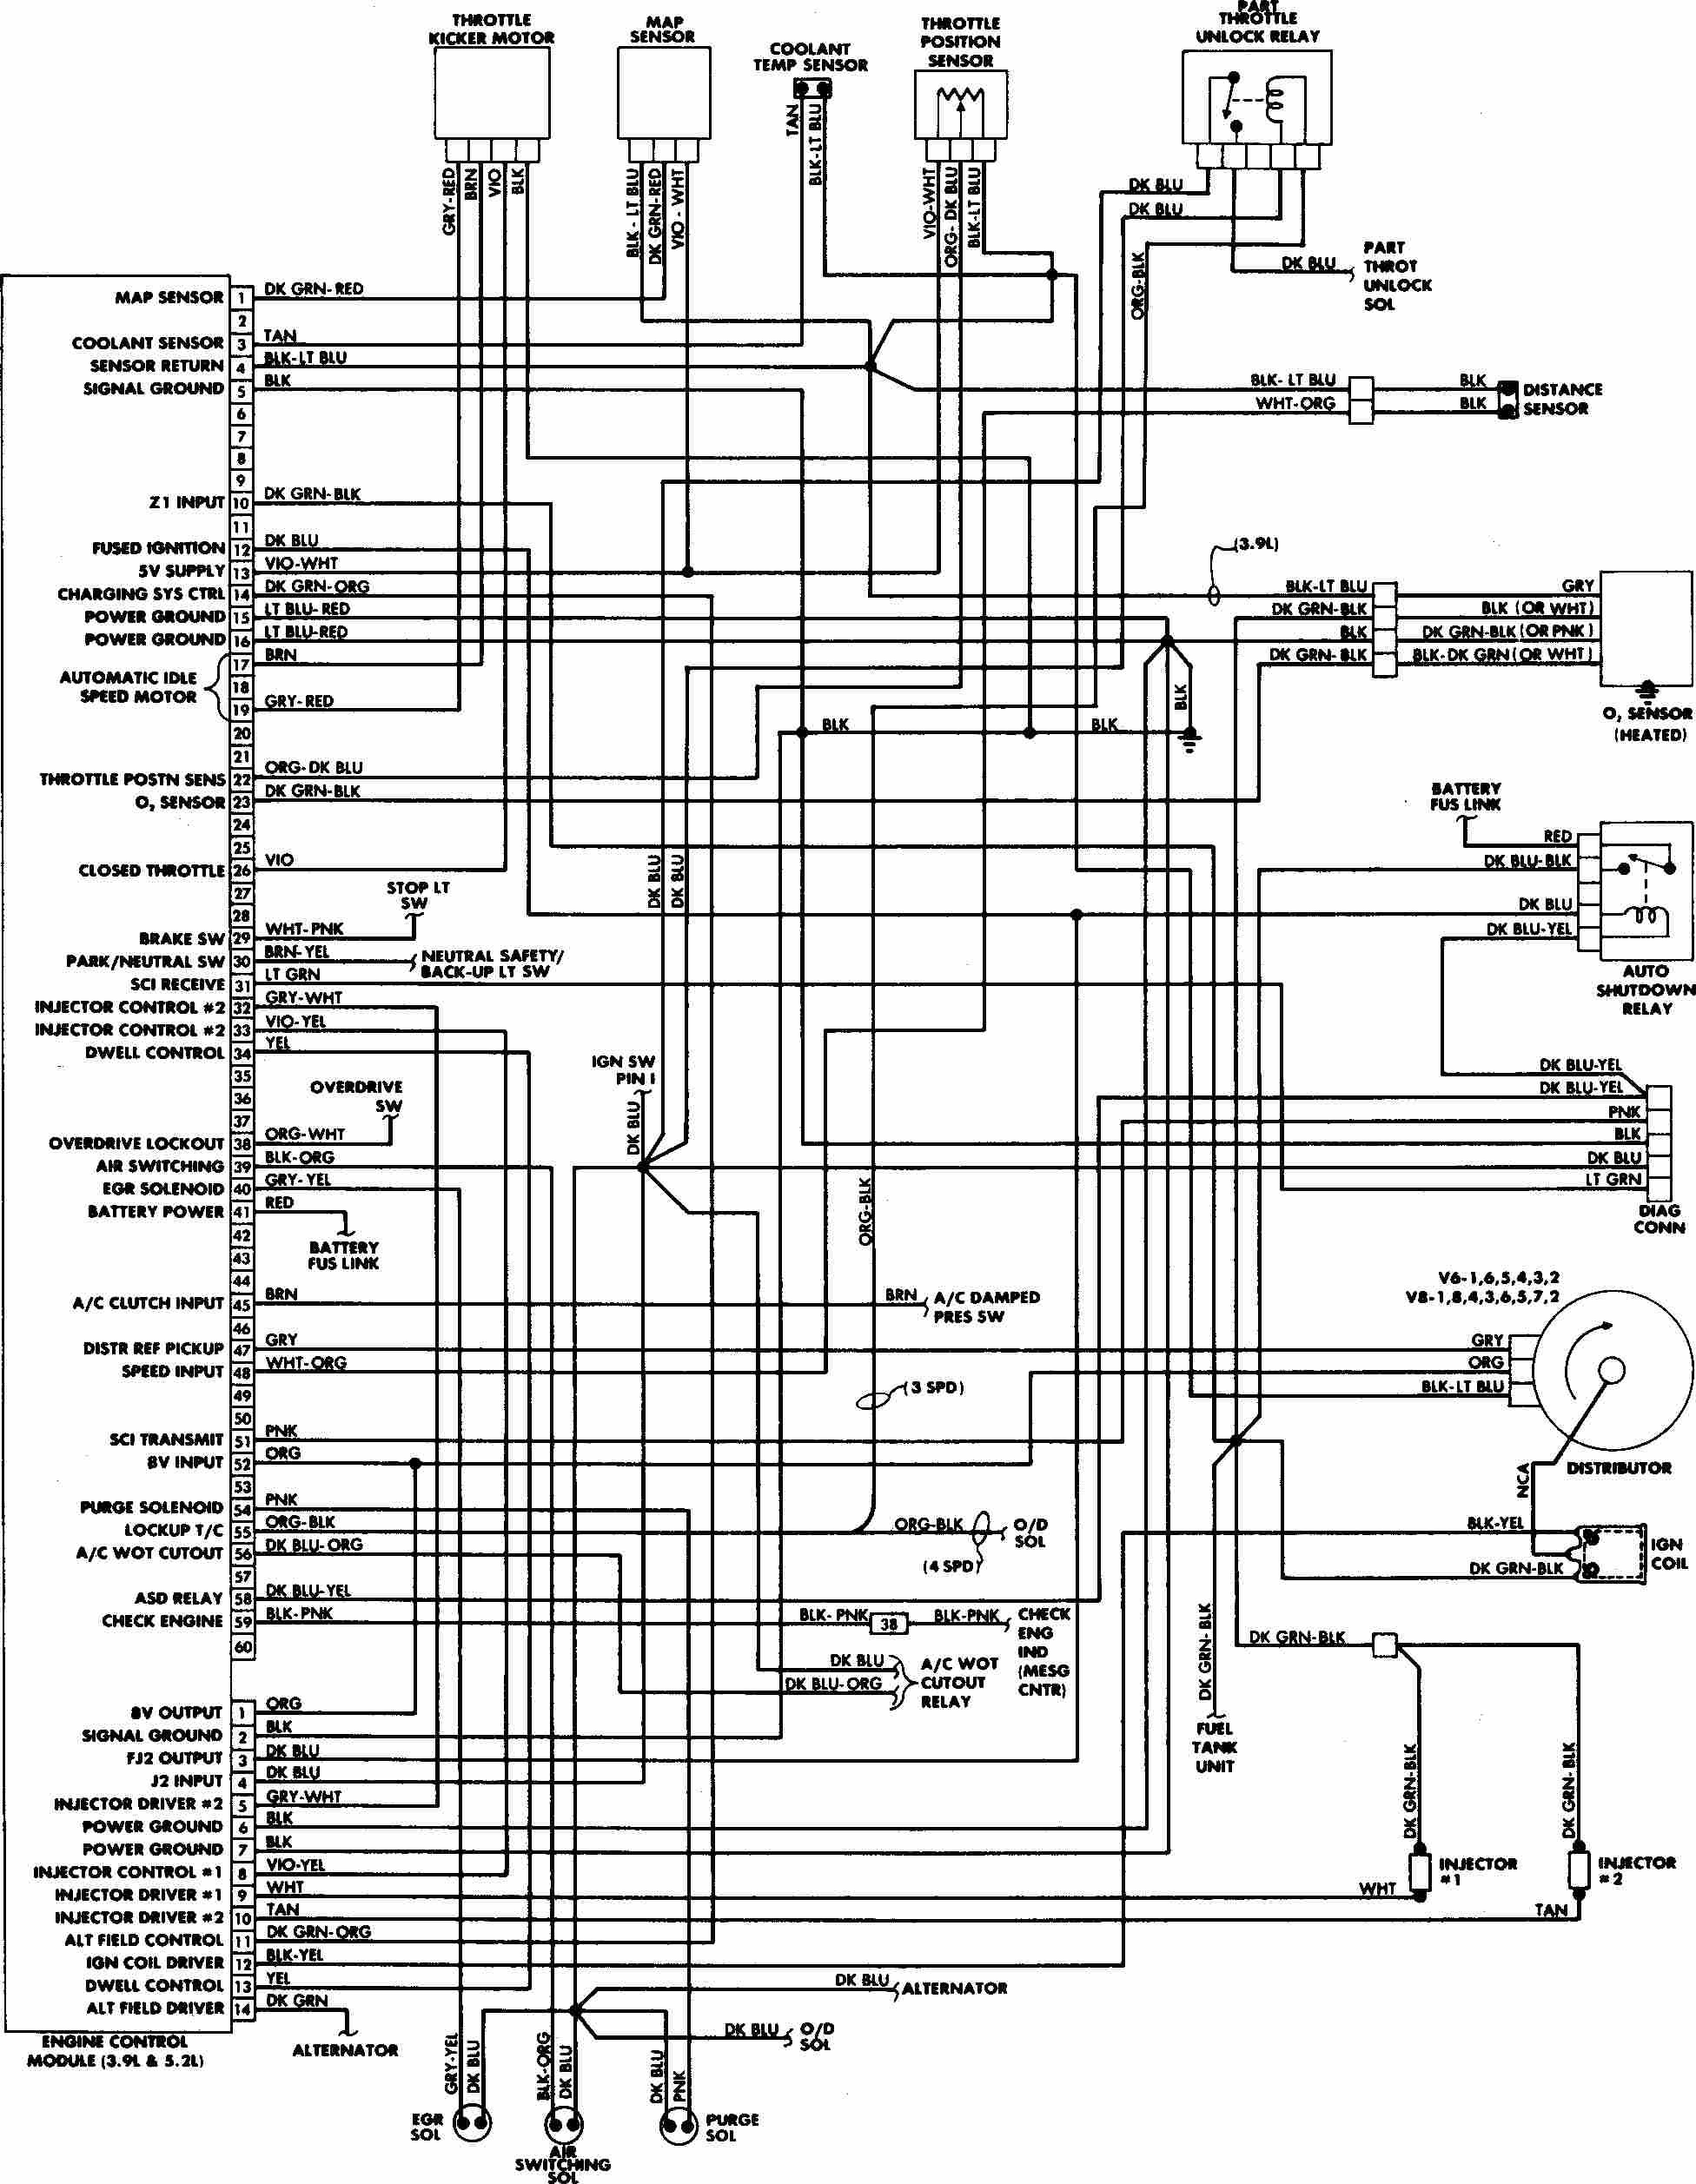 DIAGRAM] Ignition Wiring Diagram 1988 Dodge 360 FULL Version HD Quality  Dodge 360 - NECKDIAGRAM.VIRTUAL-EDGE.ITvirtual-edge.it